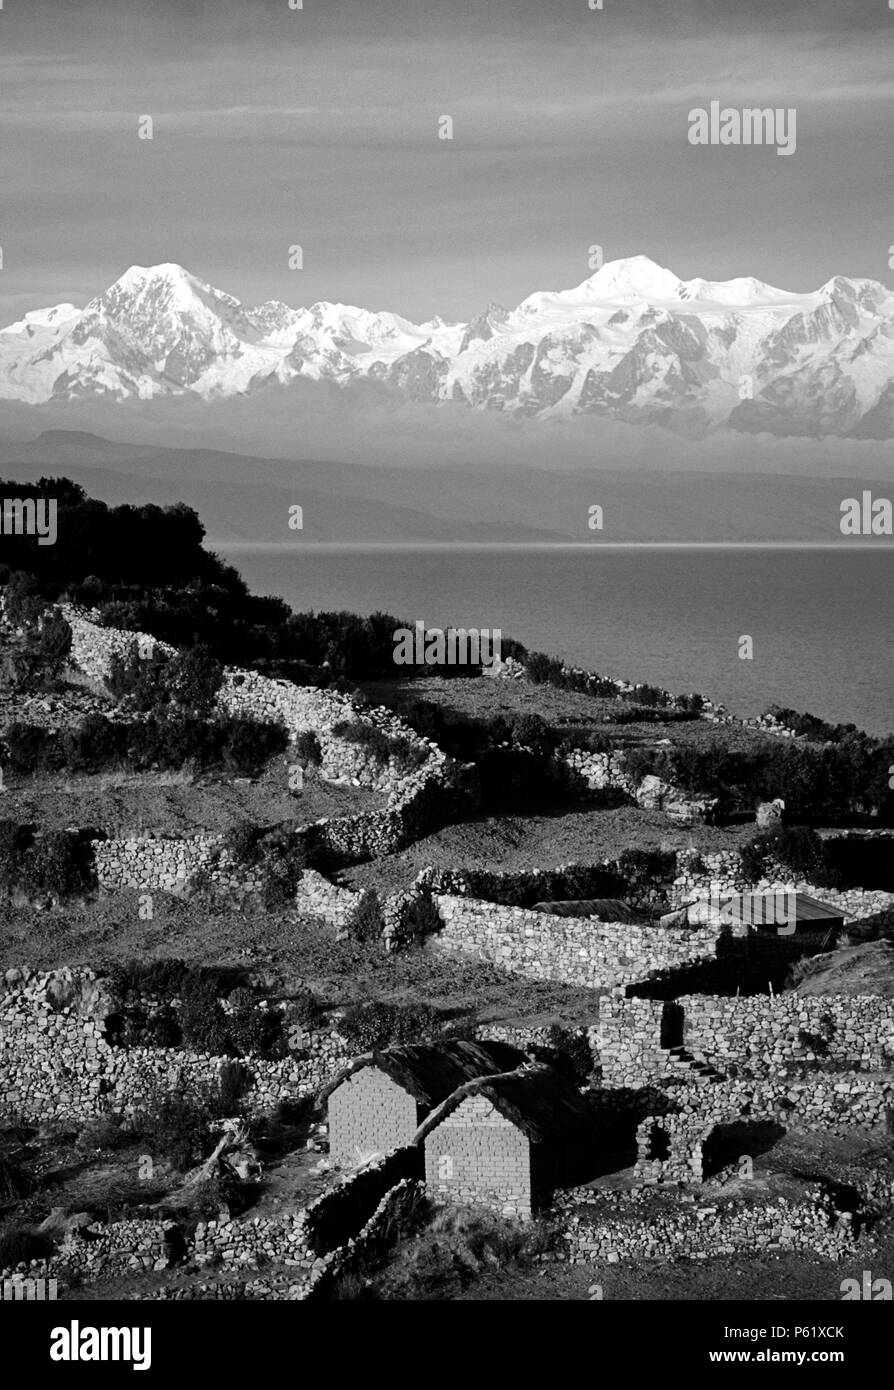 NEVADO ILLAMPU (7010 M) is visible behind the Village of CHALLAPAMPA on ISLE DEL SOL - LAKE TITICACA - Stock Image